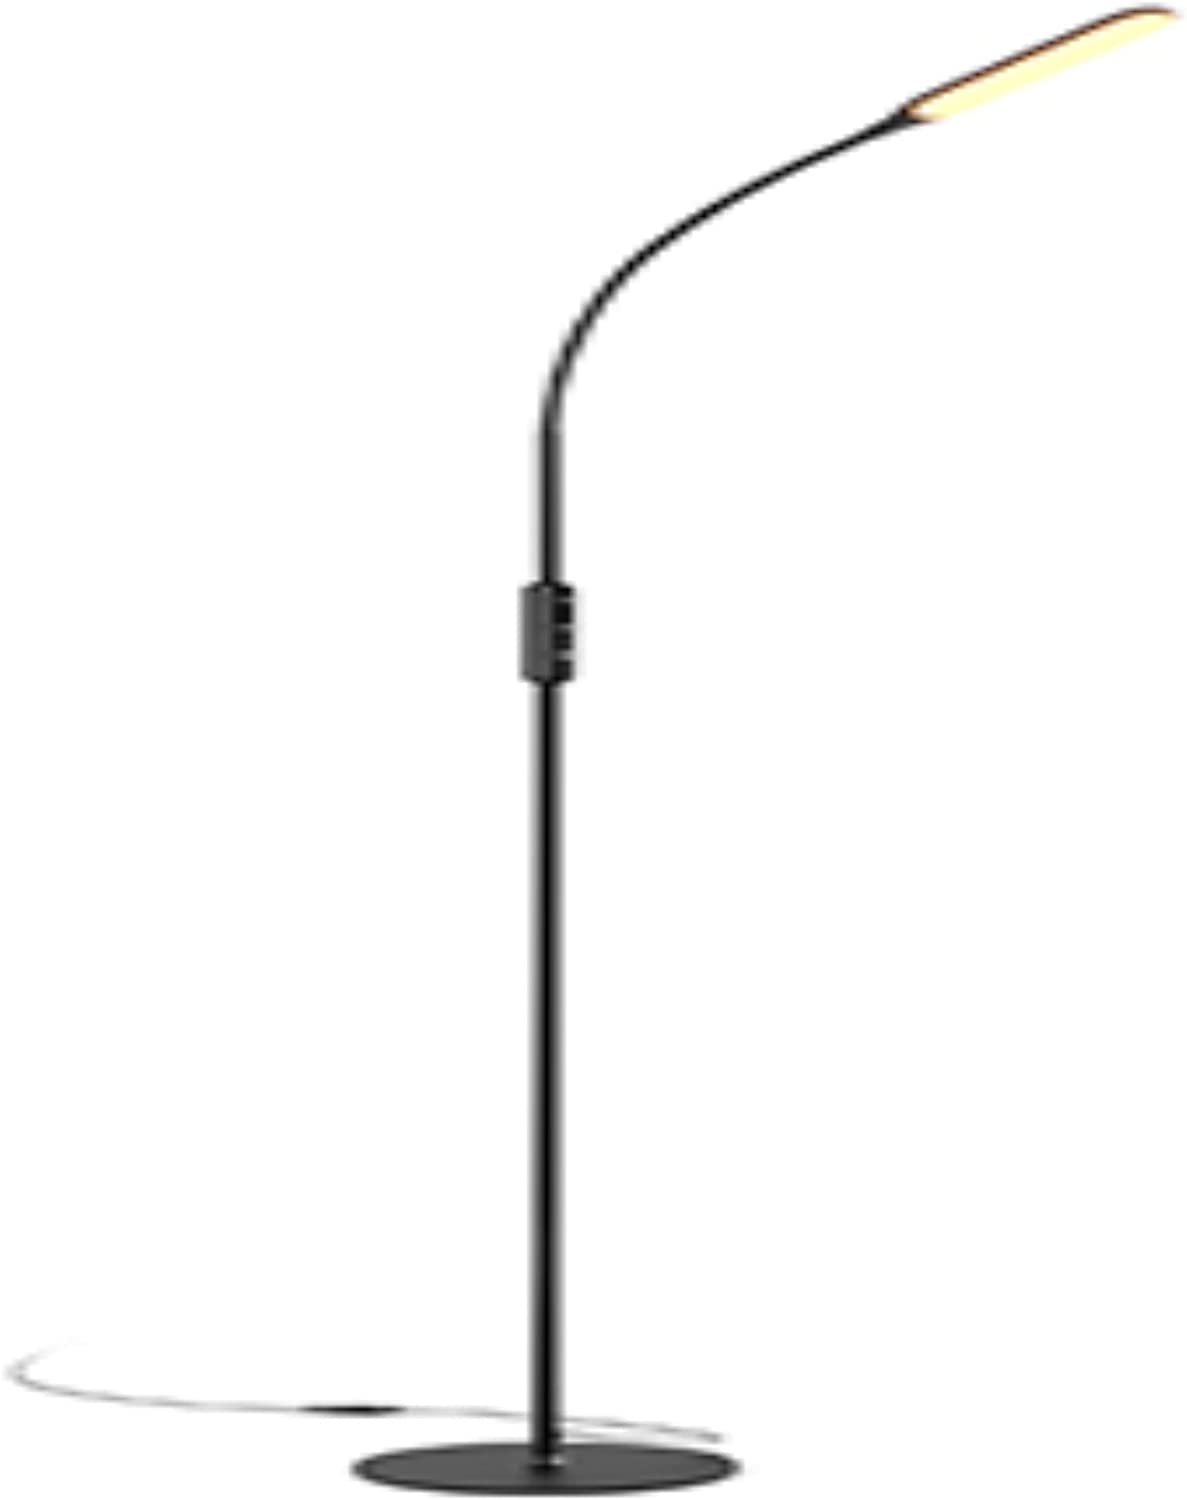 Black LED Floor Lamp with 5 Brightness Levels & 3 Colors, Gladle Bright Standing Lamps for Living Room Bedroom Office Crafting Task, Tall Reading Light with Flexible Gooseneck, Works with Smart Plug